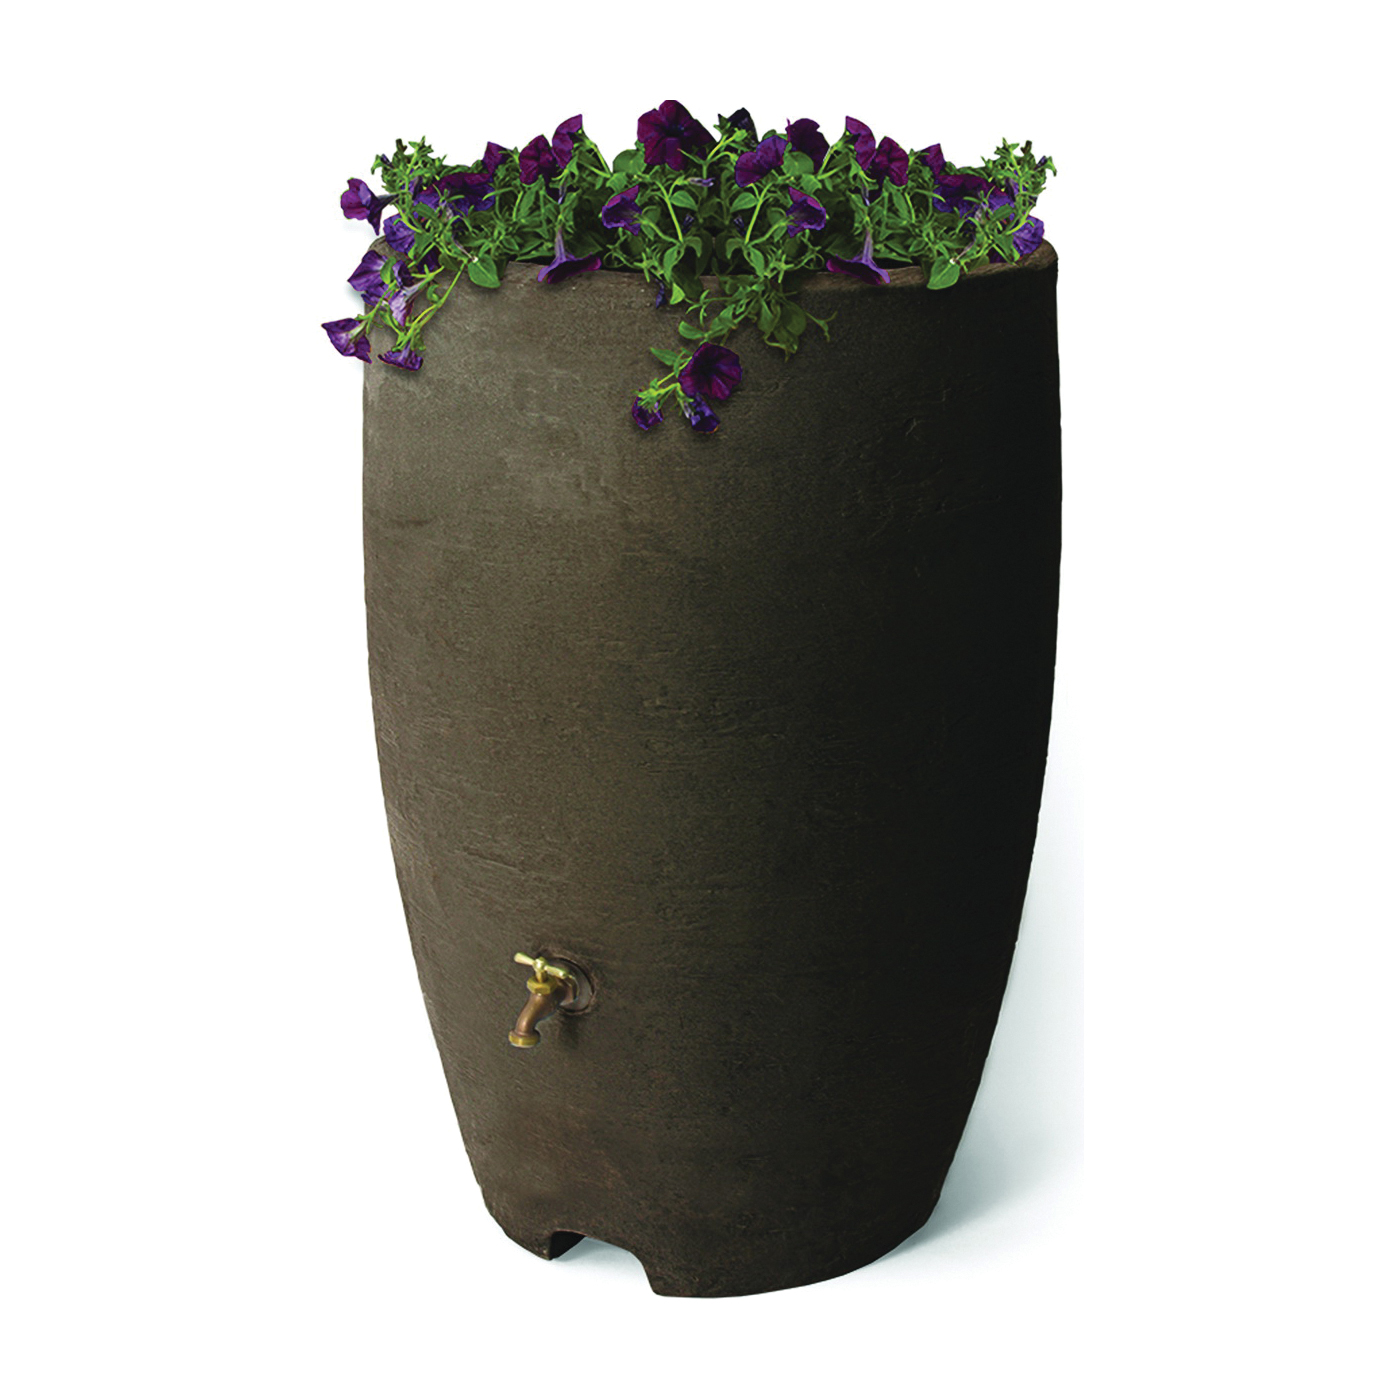 Picture of Algreen 86312 Rain Barrel, 50 gal Capacity, Brass, Brownstone